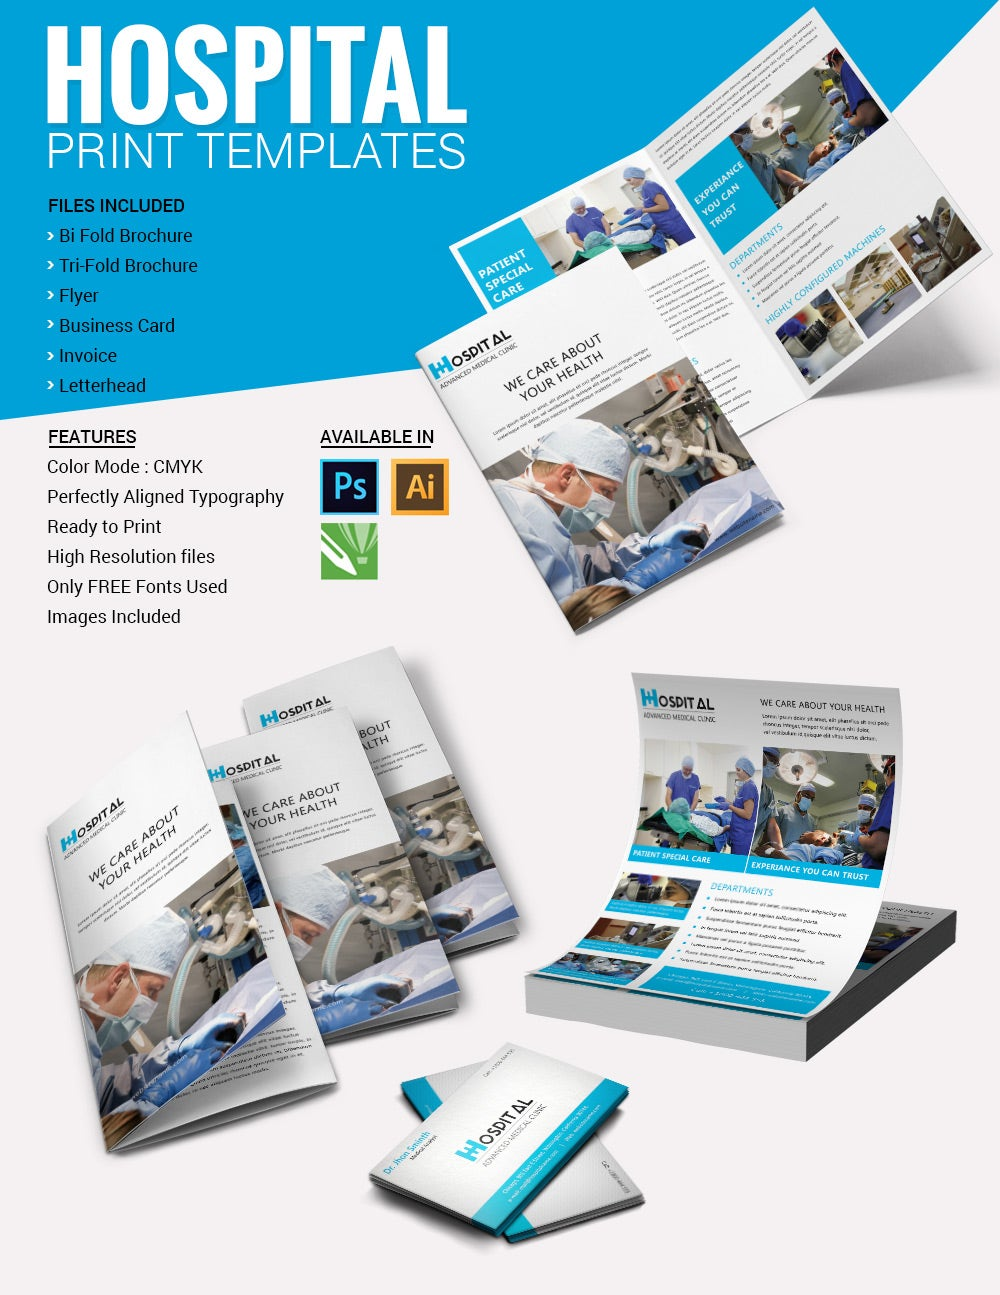 Medical brochure template 39 free psd ai vector eps for Medical office brochure templates